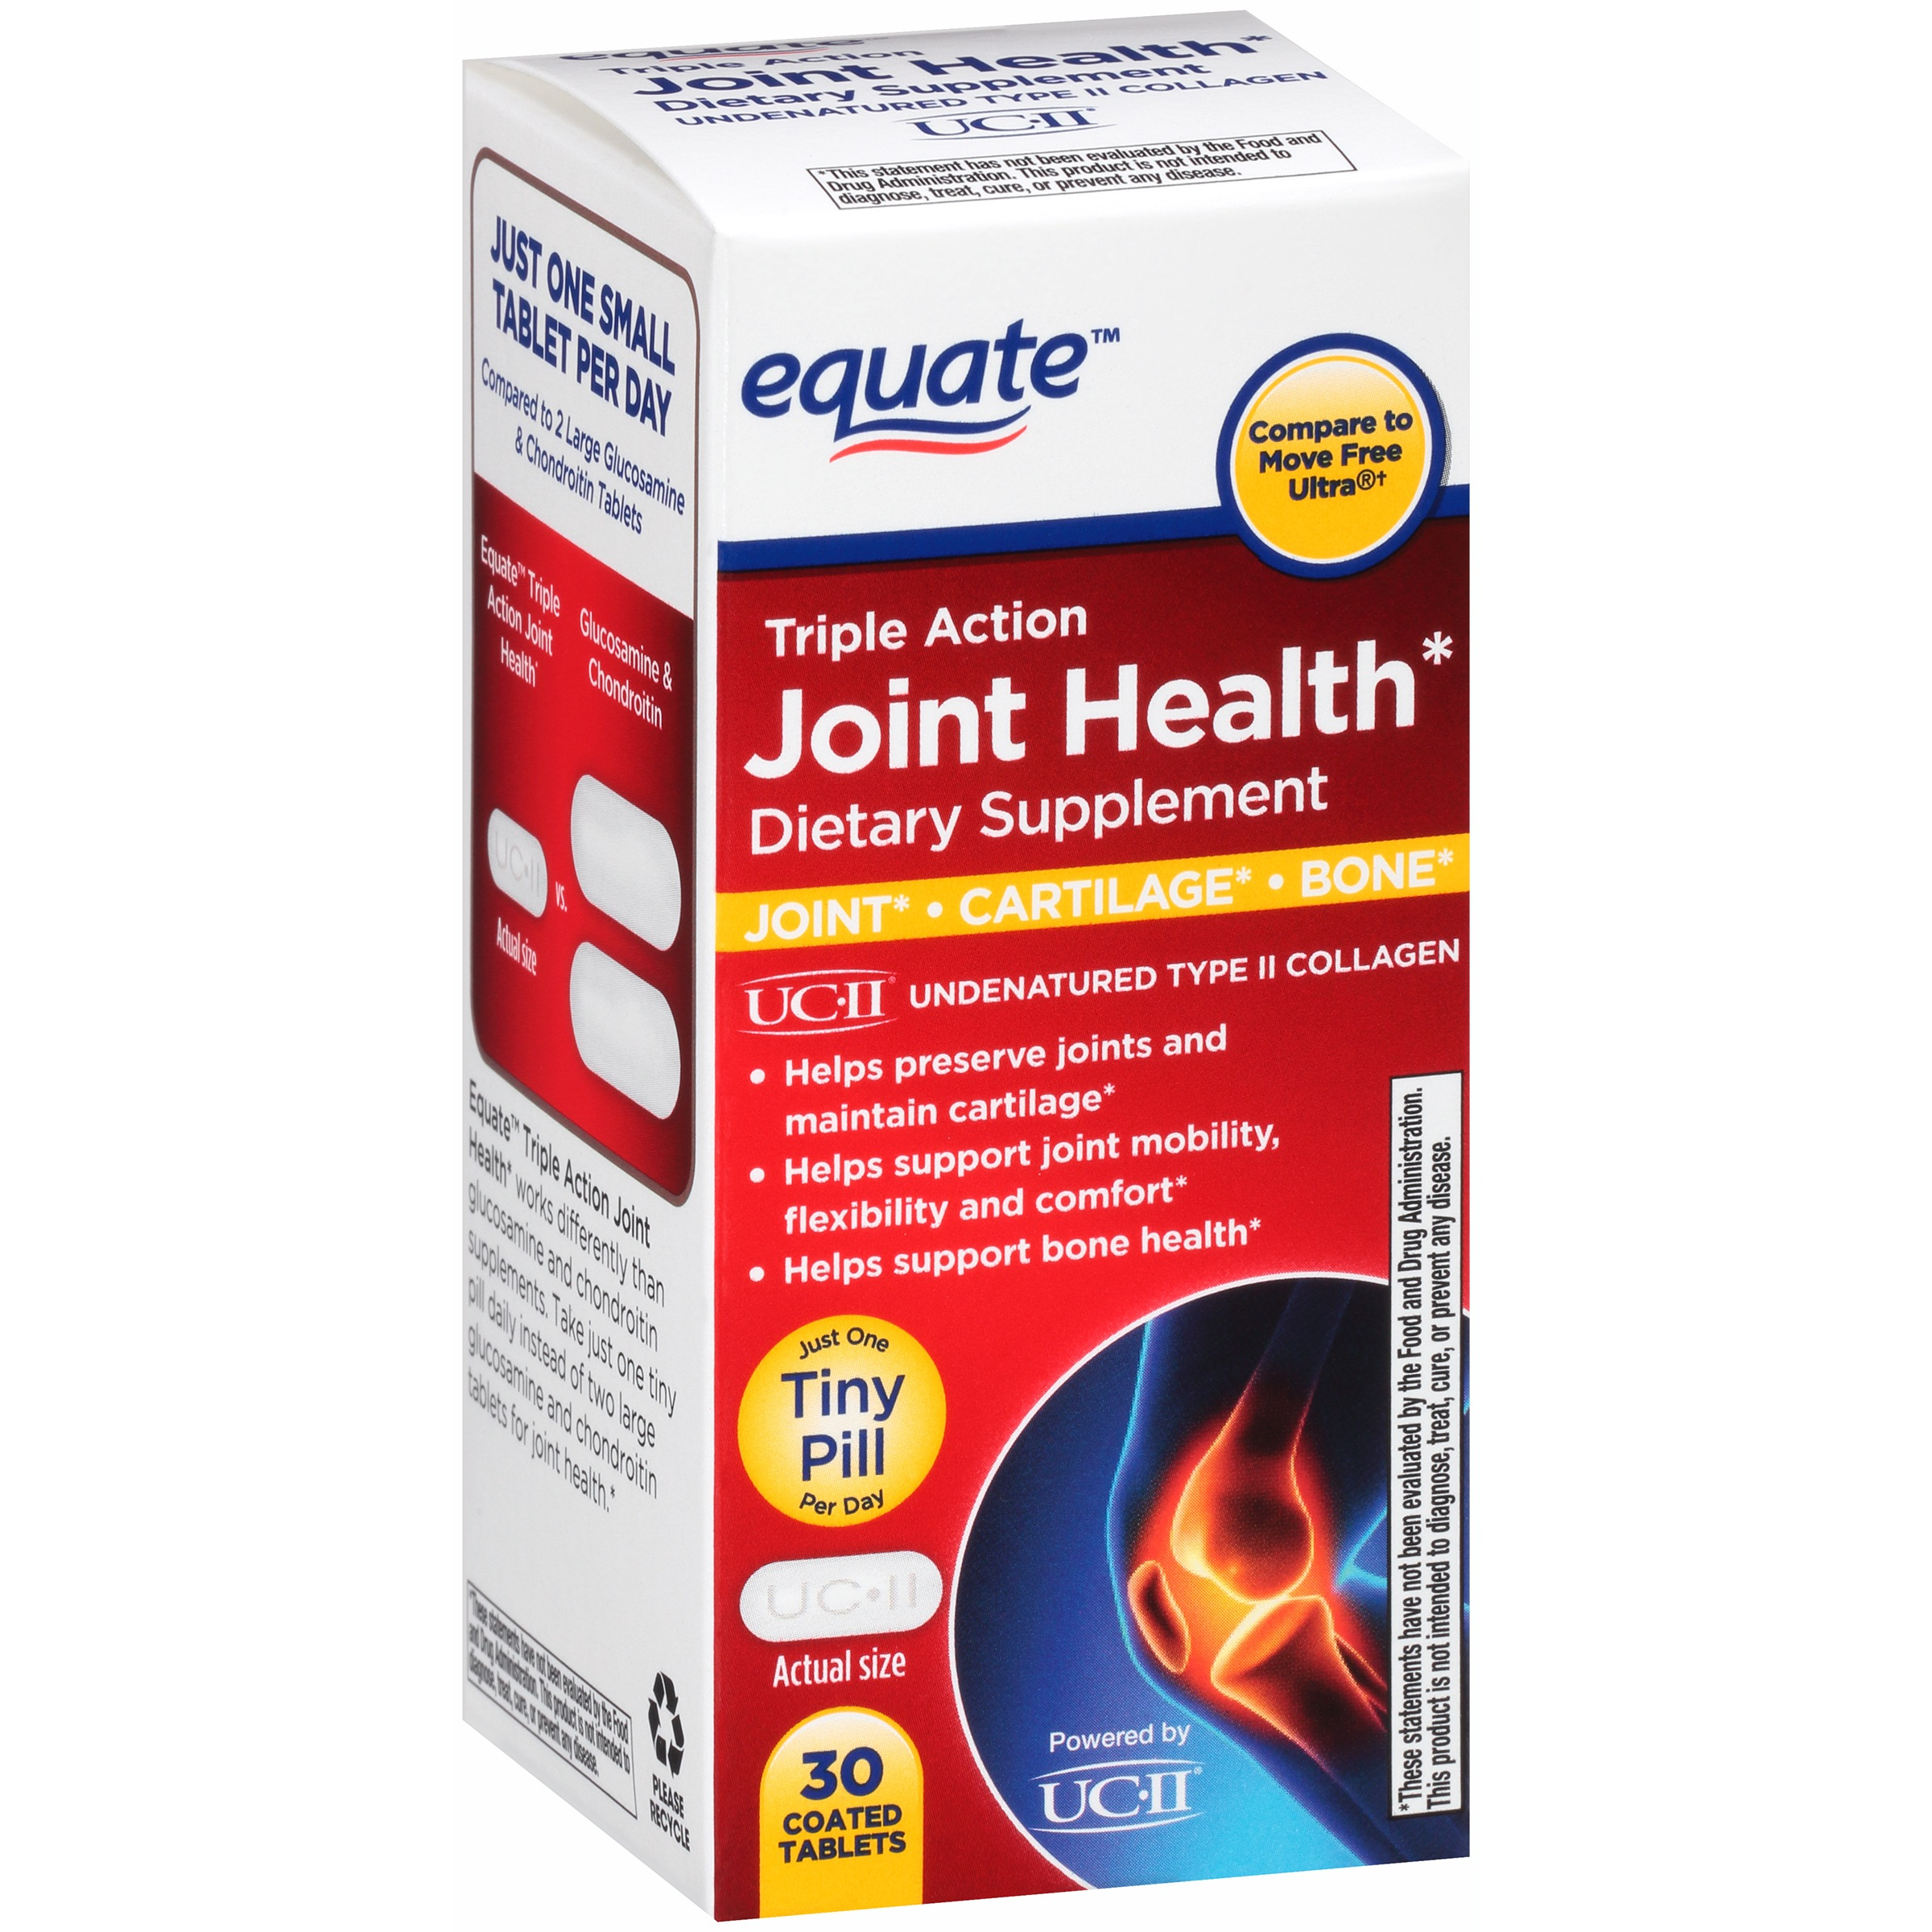 Walmart Credit Card Review >> Equate triple action joint health (30 Ct) - Walmart.com